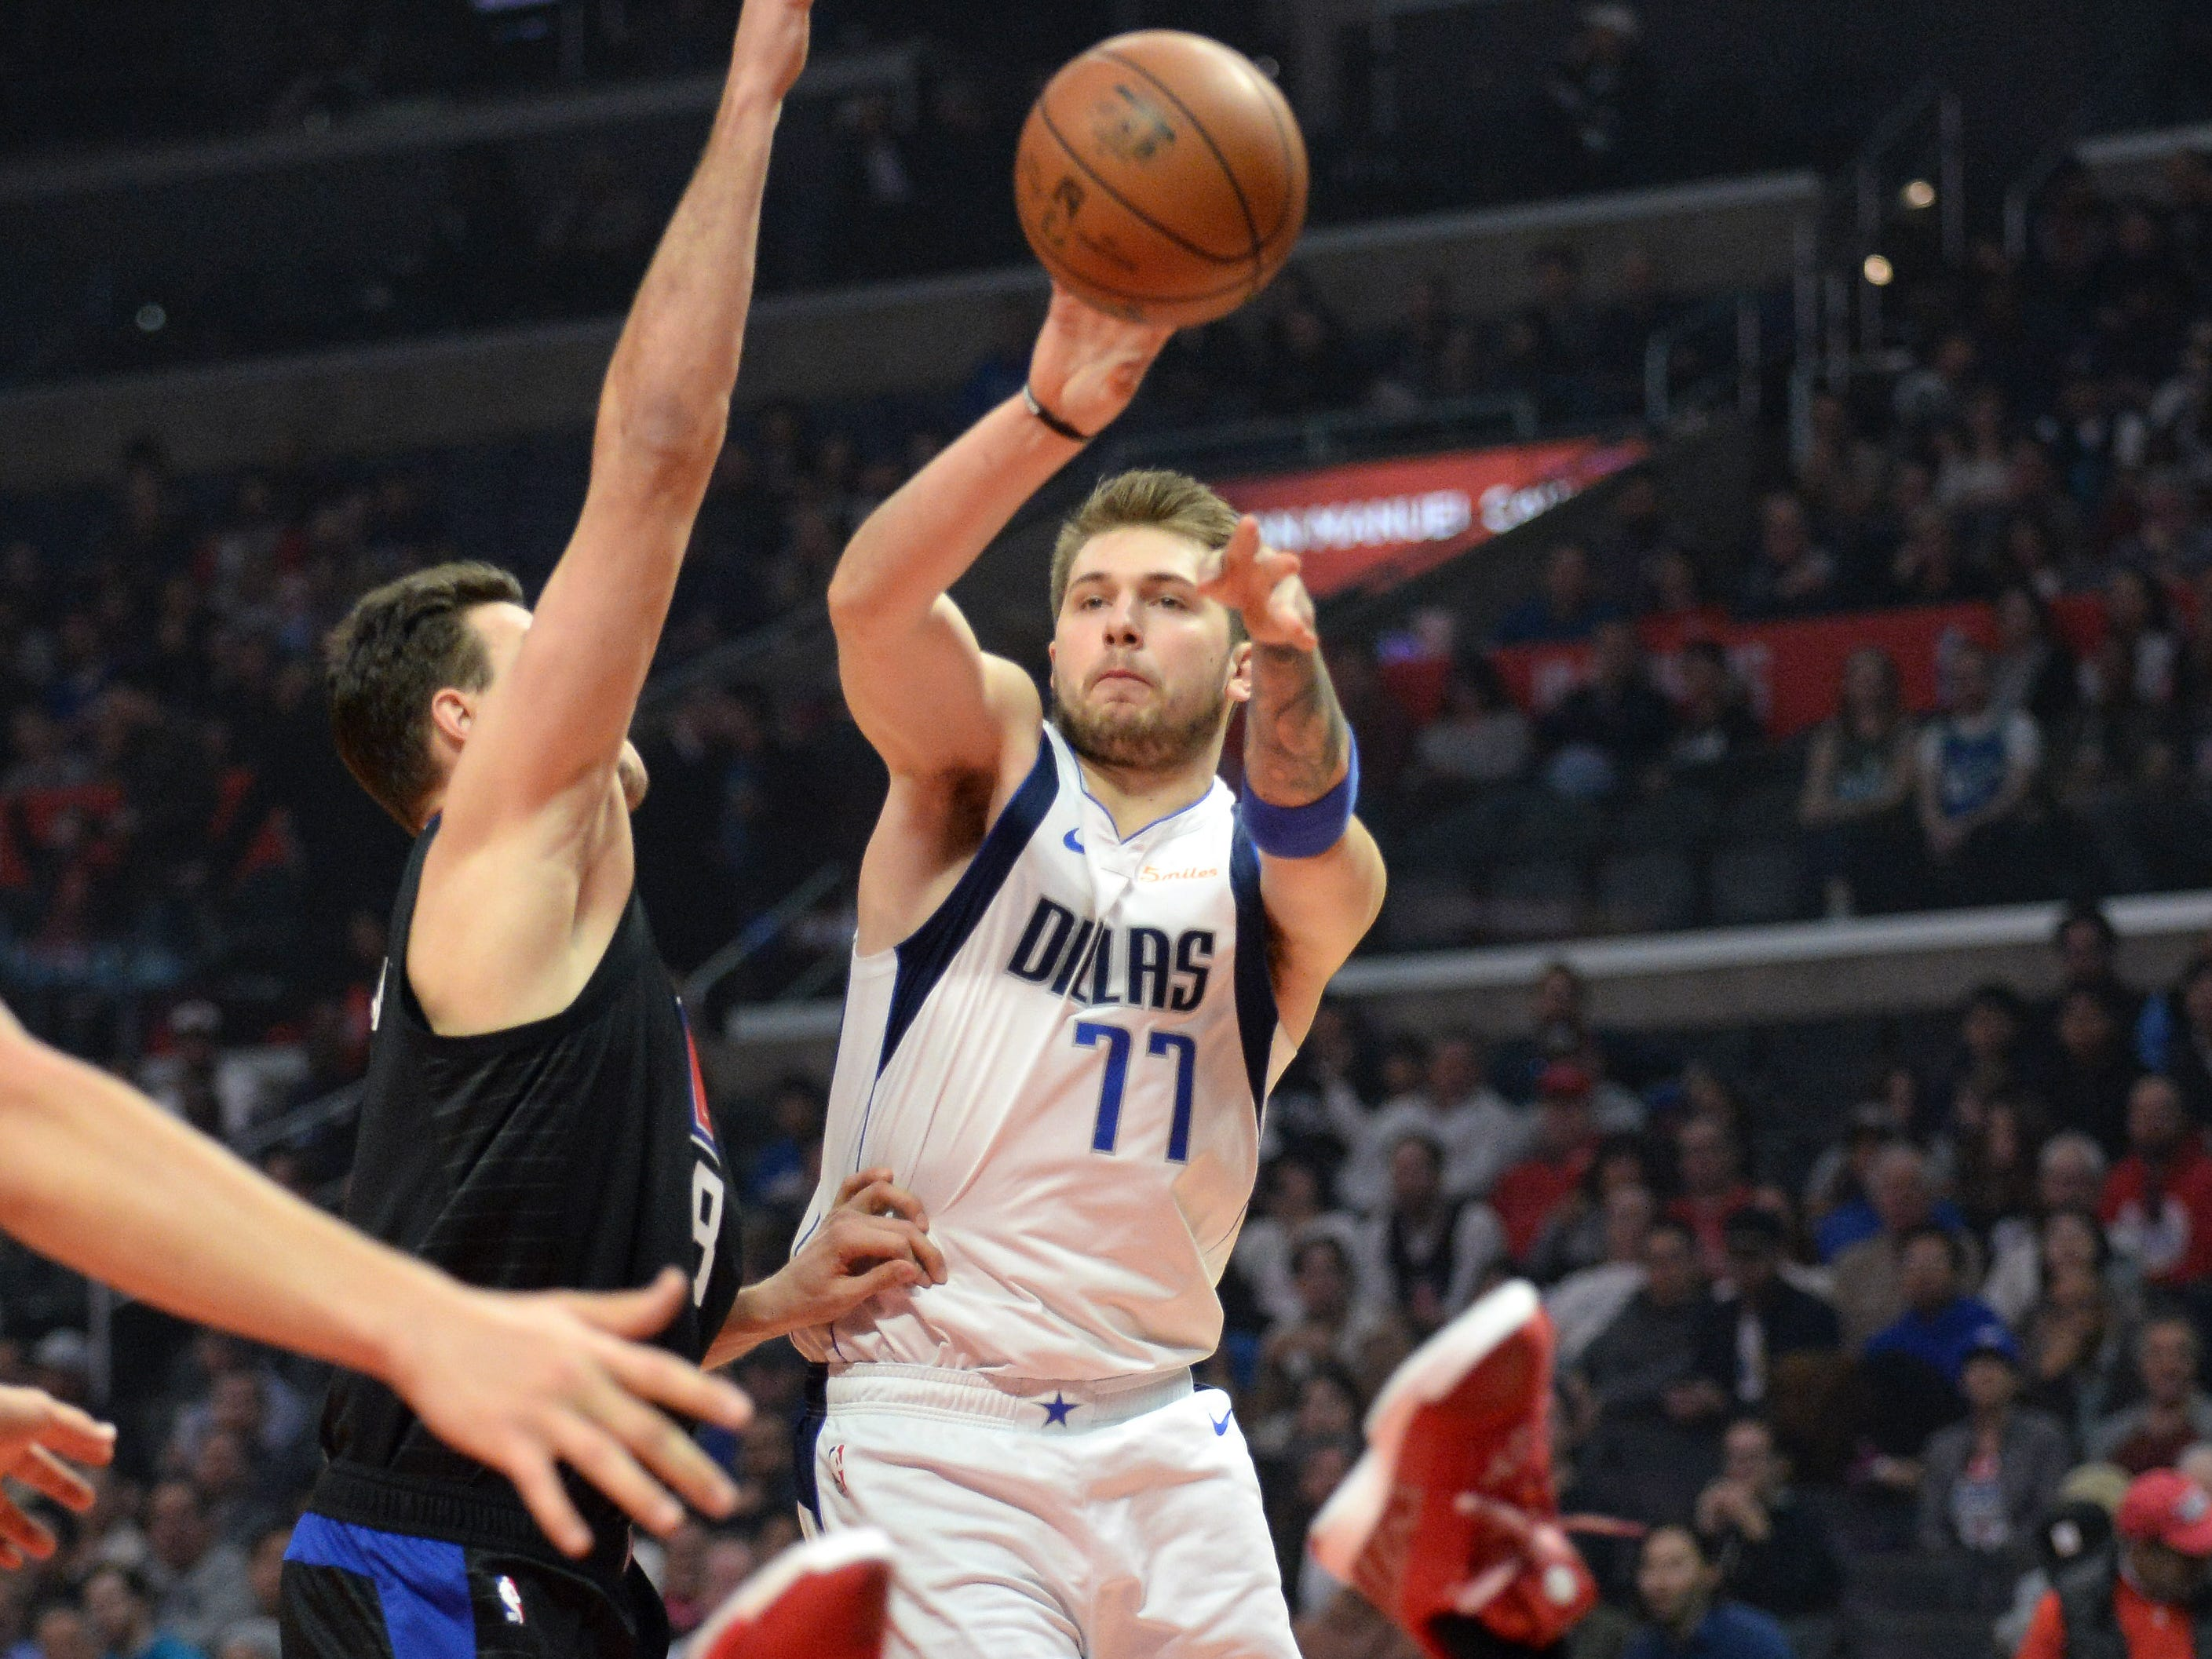 88. Luka Doncic, Mavericks (Feb. 25):28 points, 10 rebounds, 10 assists in 121-112 loss to Clippers (fourth of season).